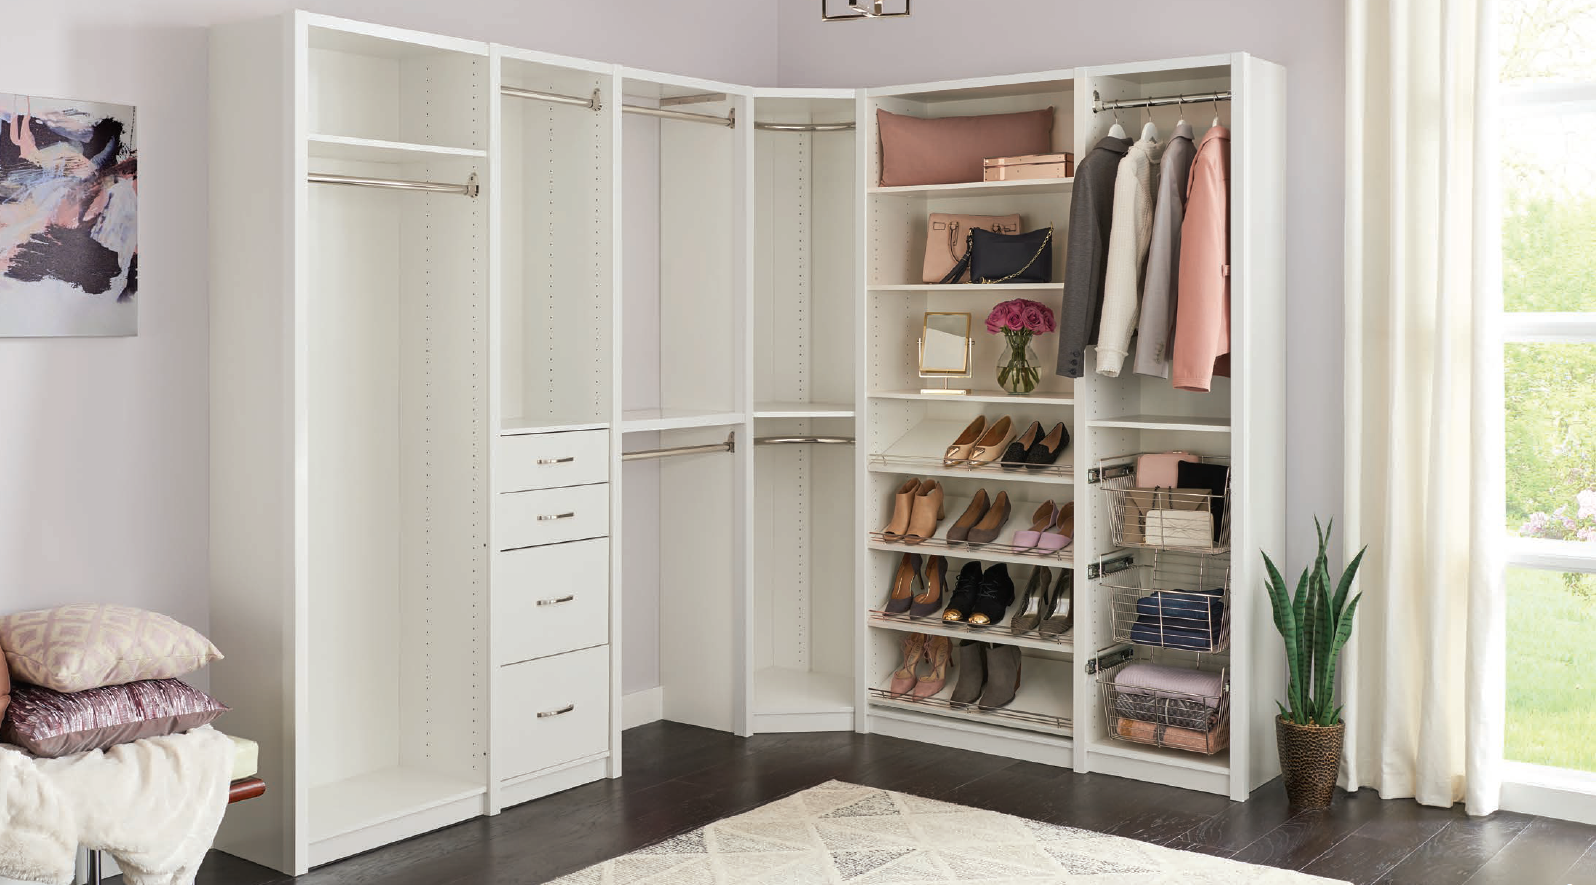 Tips to Create the Perfect Closet System